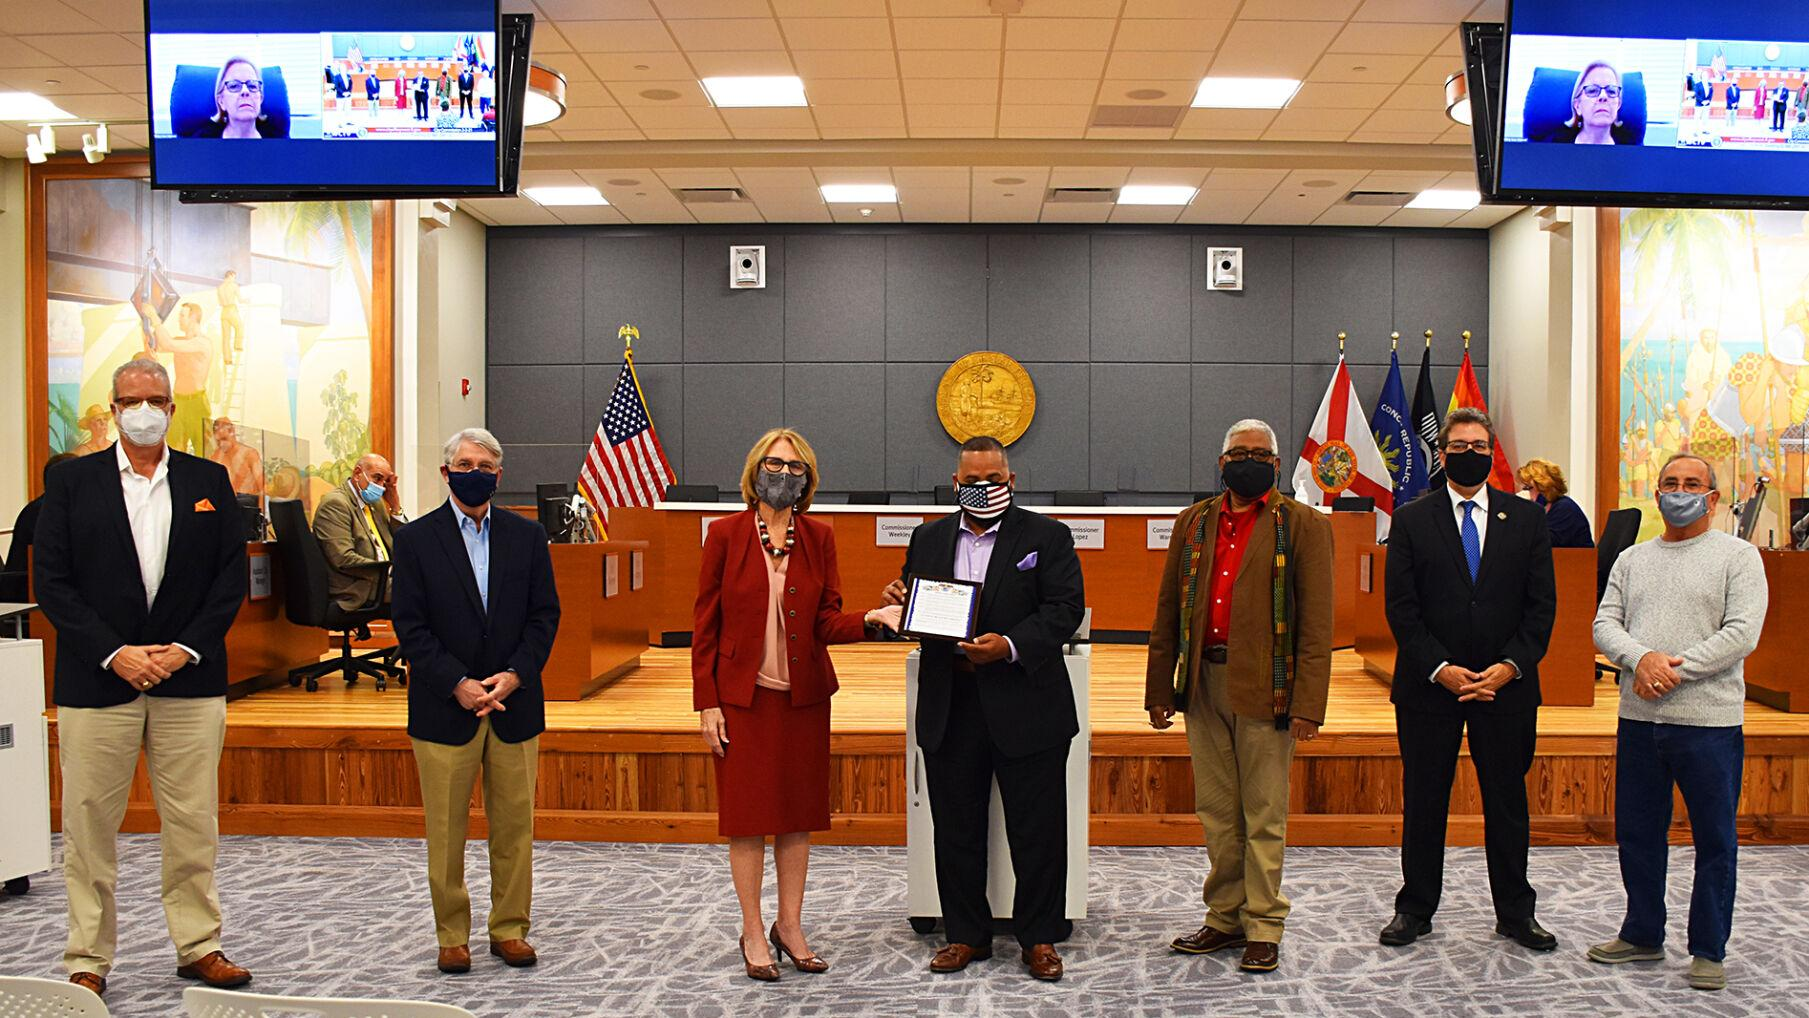 City proclaims Black AIDS Awareness Day